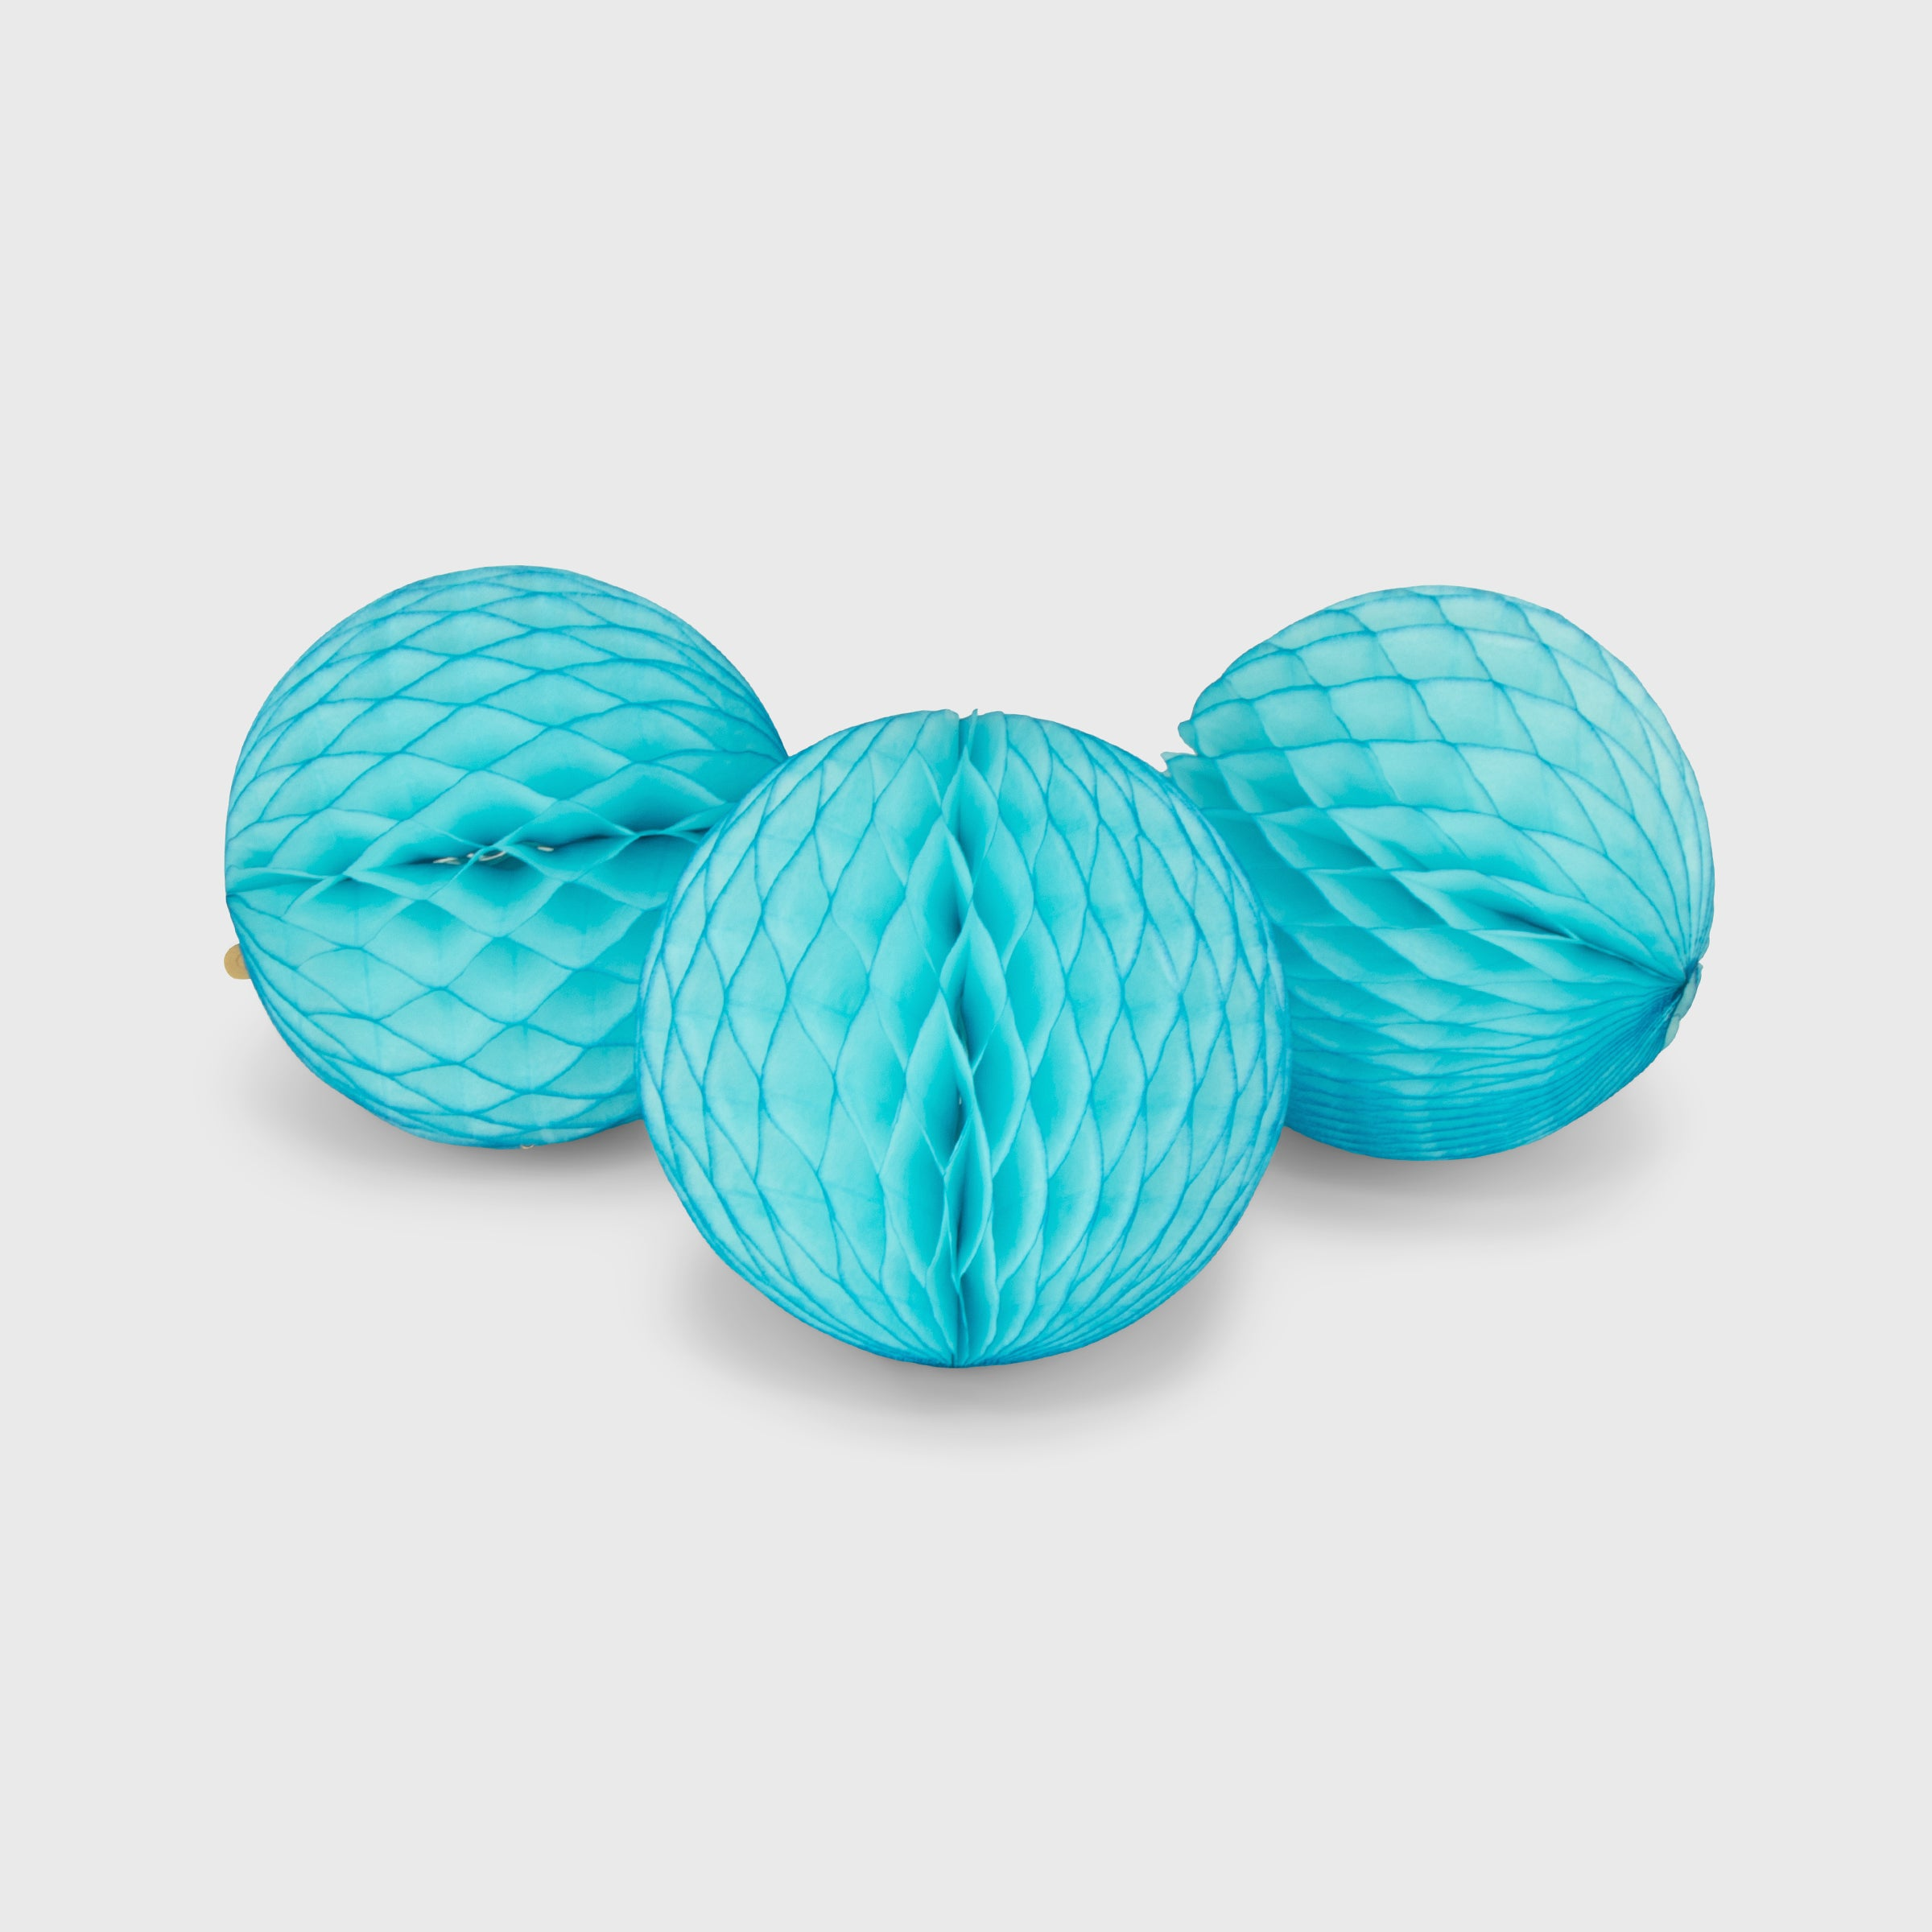 Honeycomb Ball 15cm Pack of 3, Sky Blue